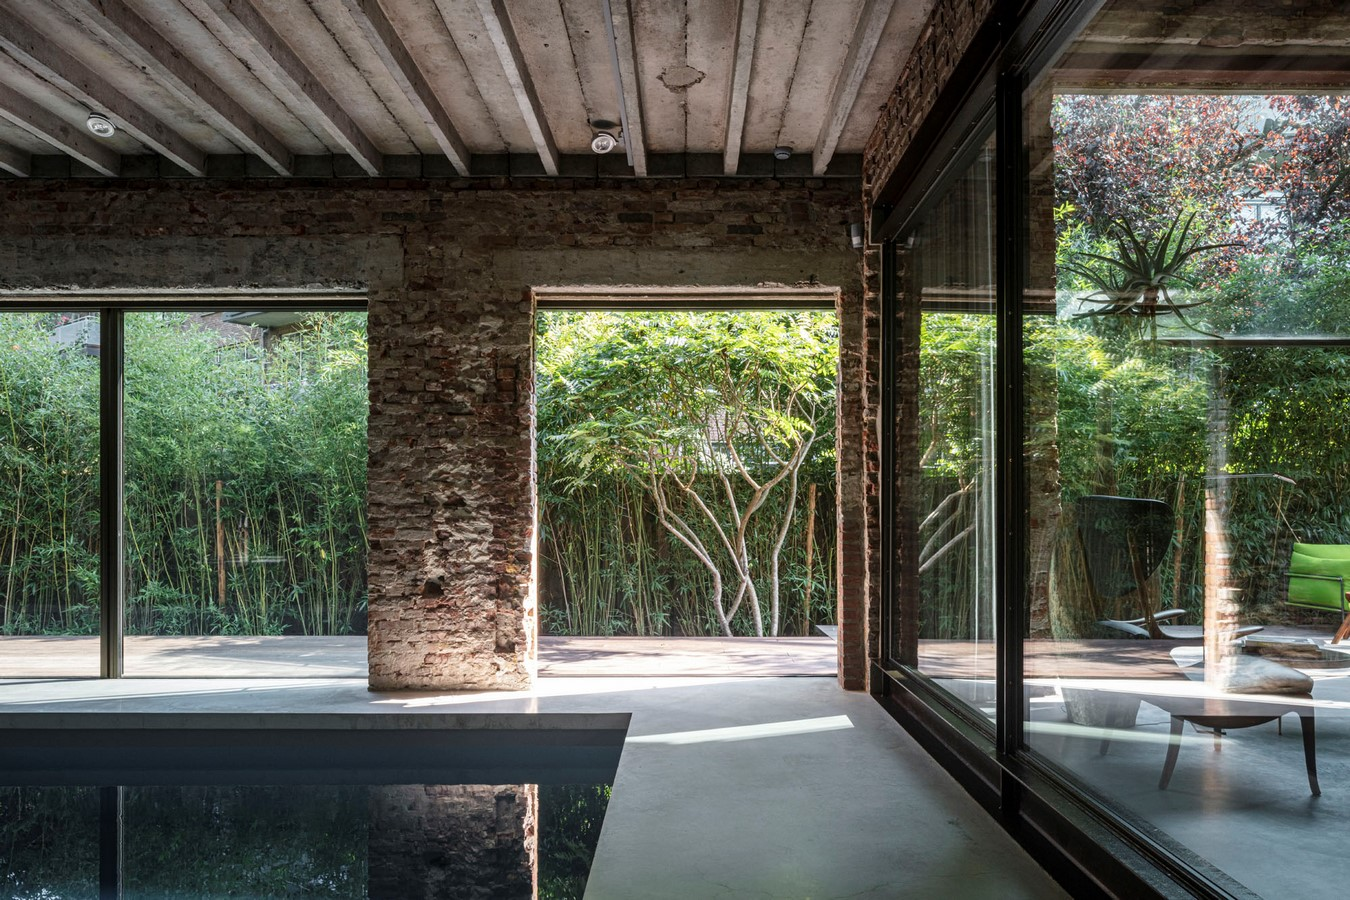 Abandoned 1940s Sports Building converted into New Villa With Naked Brick Walls by MASA Architects - Sheet11